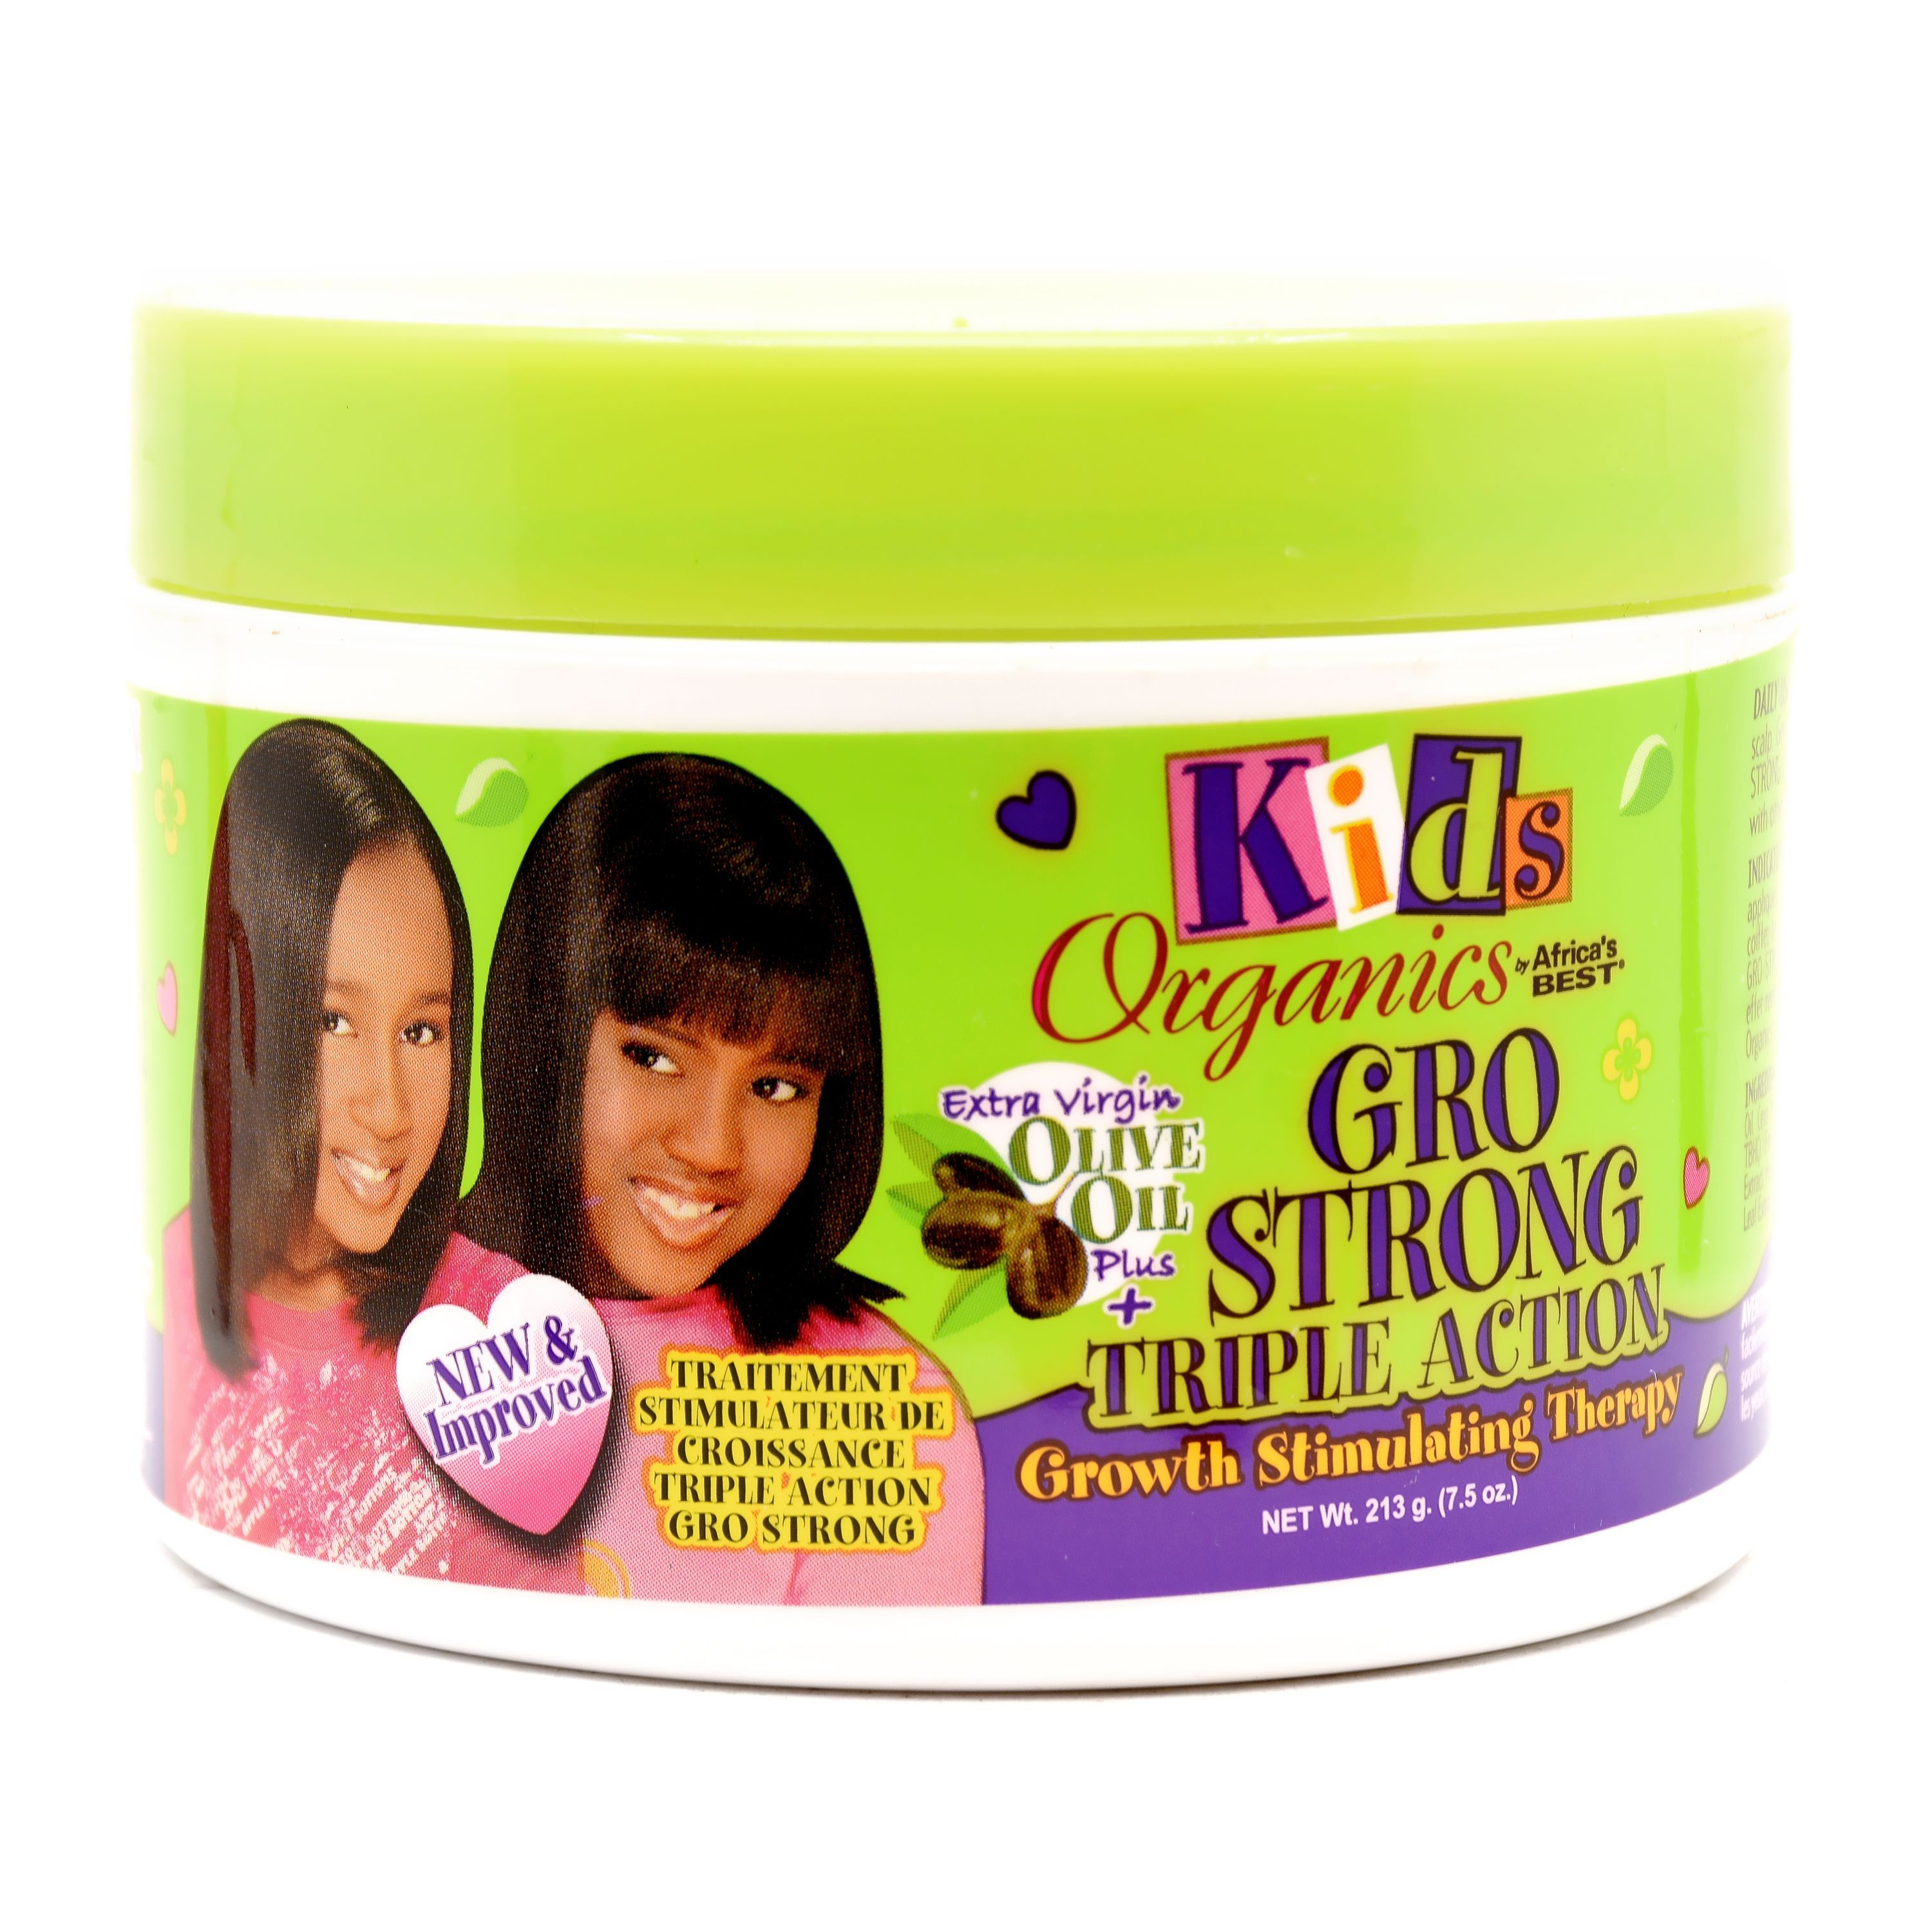 Kids Original Africa's Best Gro Strong Triple Action Growth Stimulating Therapy - 7.5oz